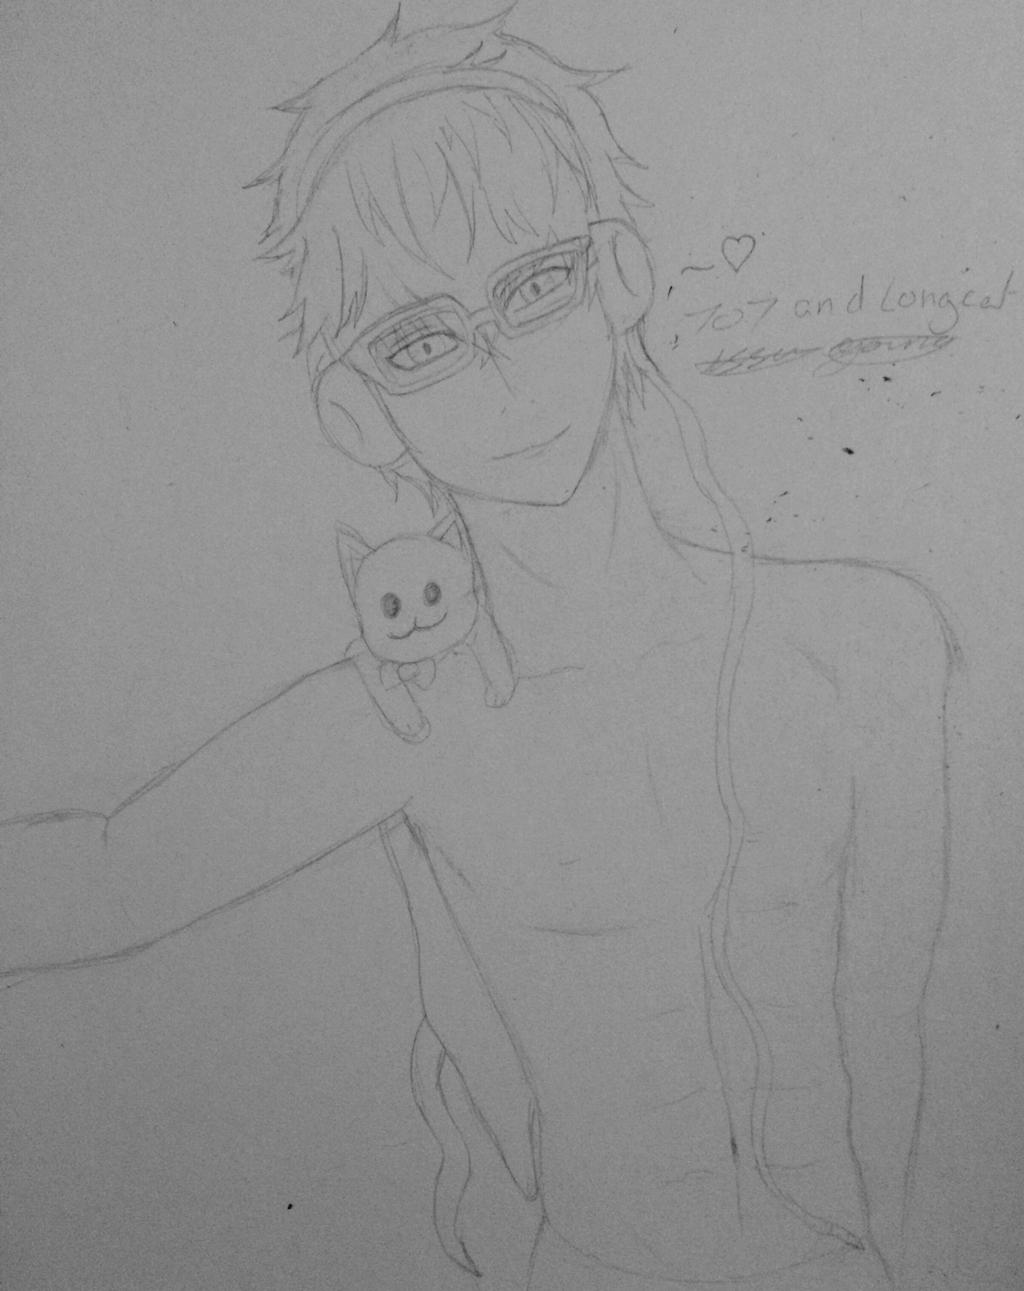 707 Mystic Messenger WIP by epicbubble7